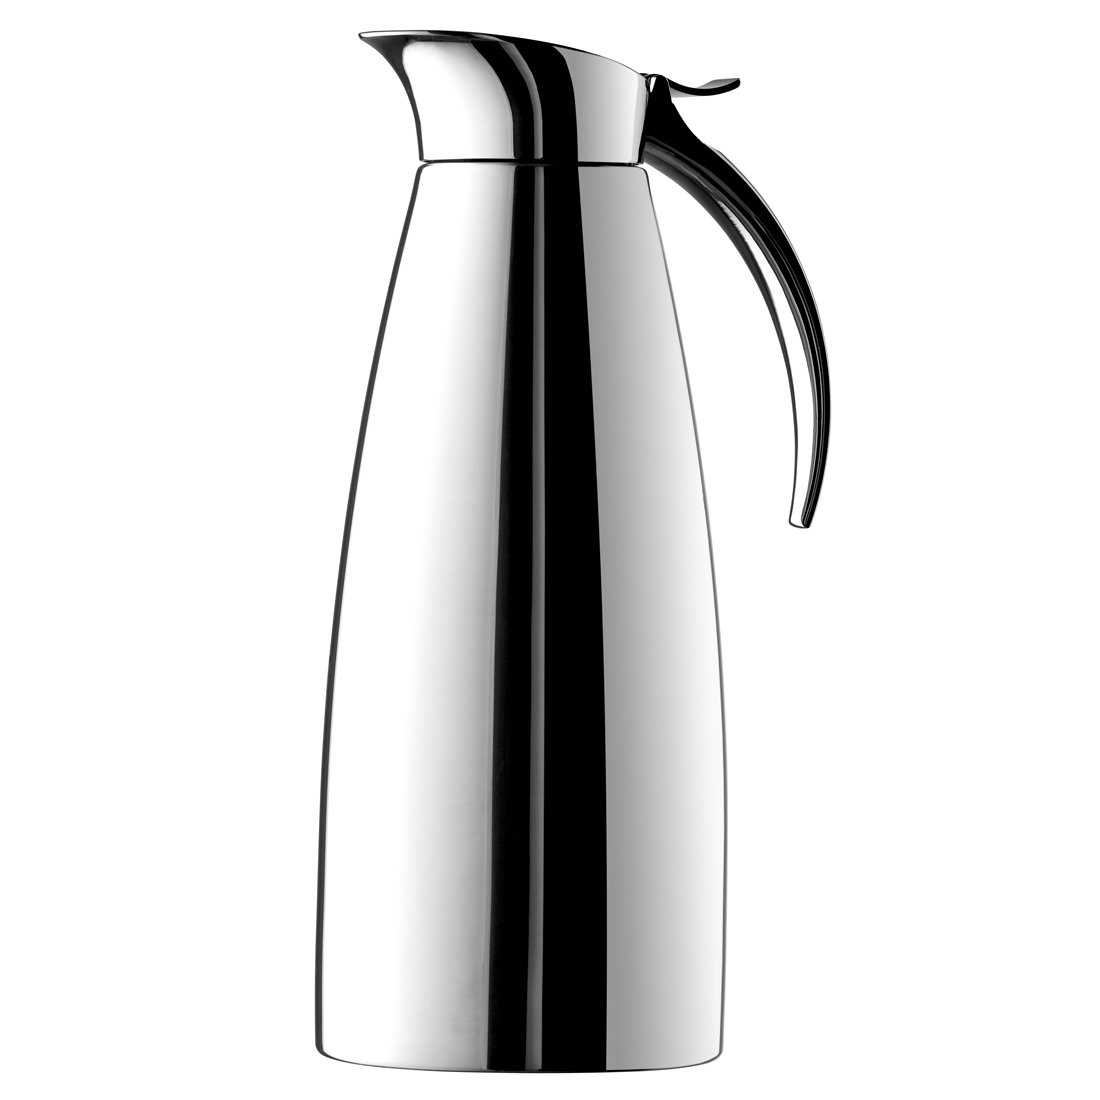 Emsa Eleganza Stainless Steel Insulated Carafe, 10-Ounce E502663